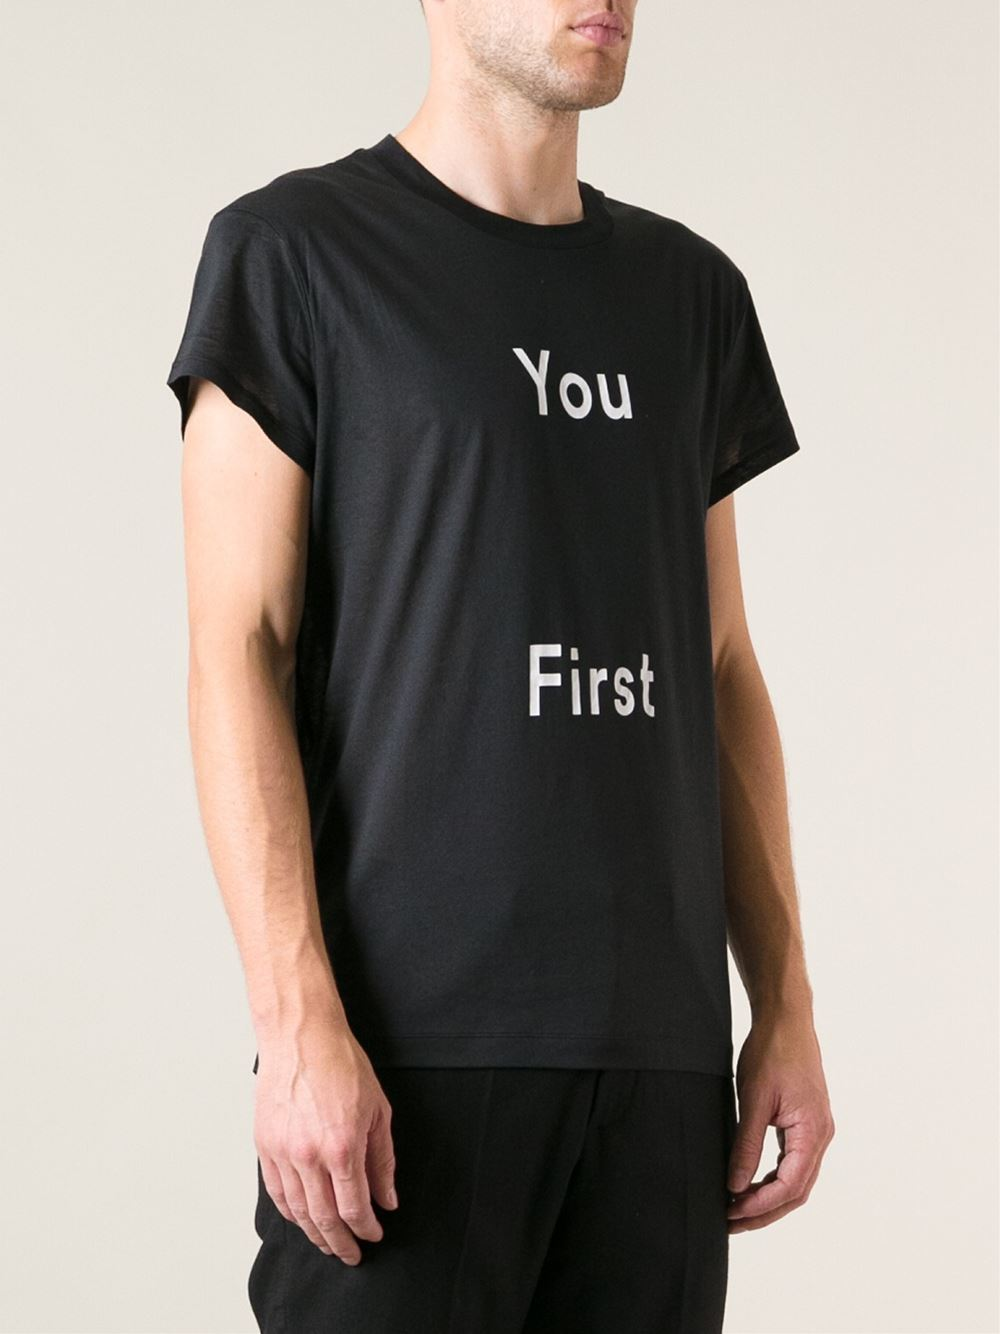 You First ACNE Studio cool shirt 2